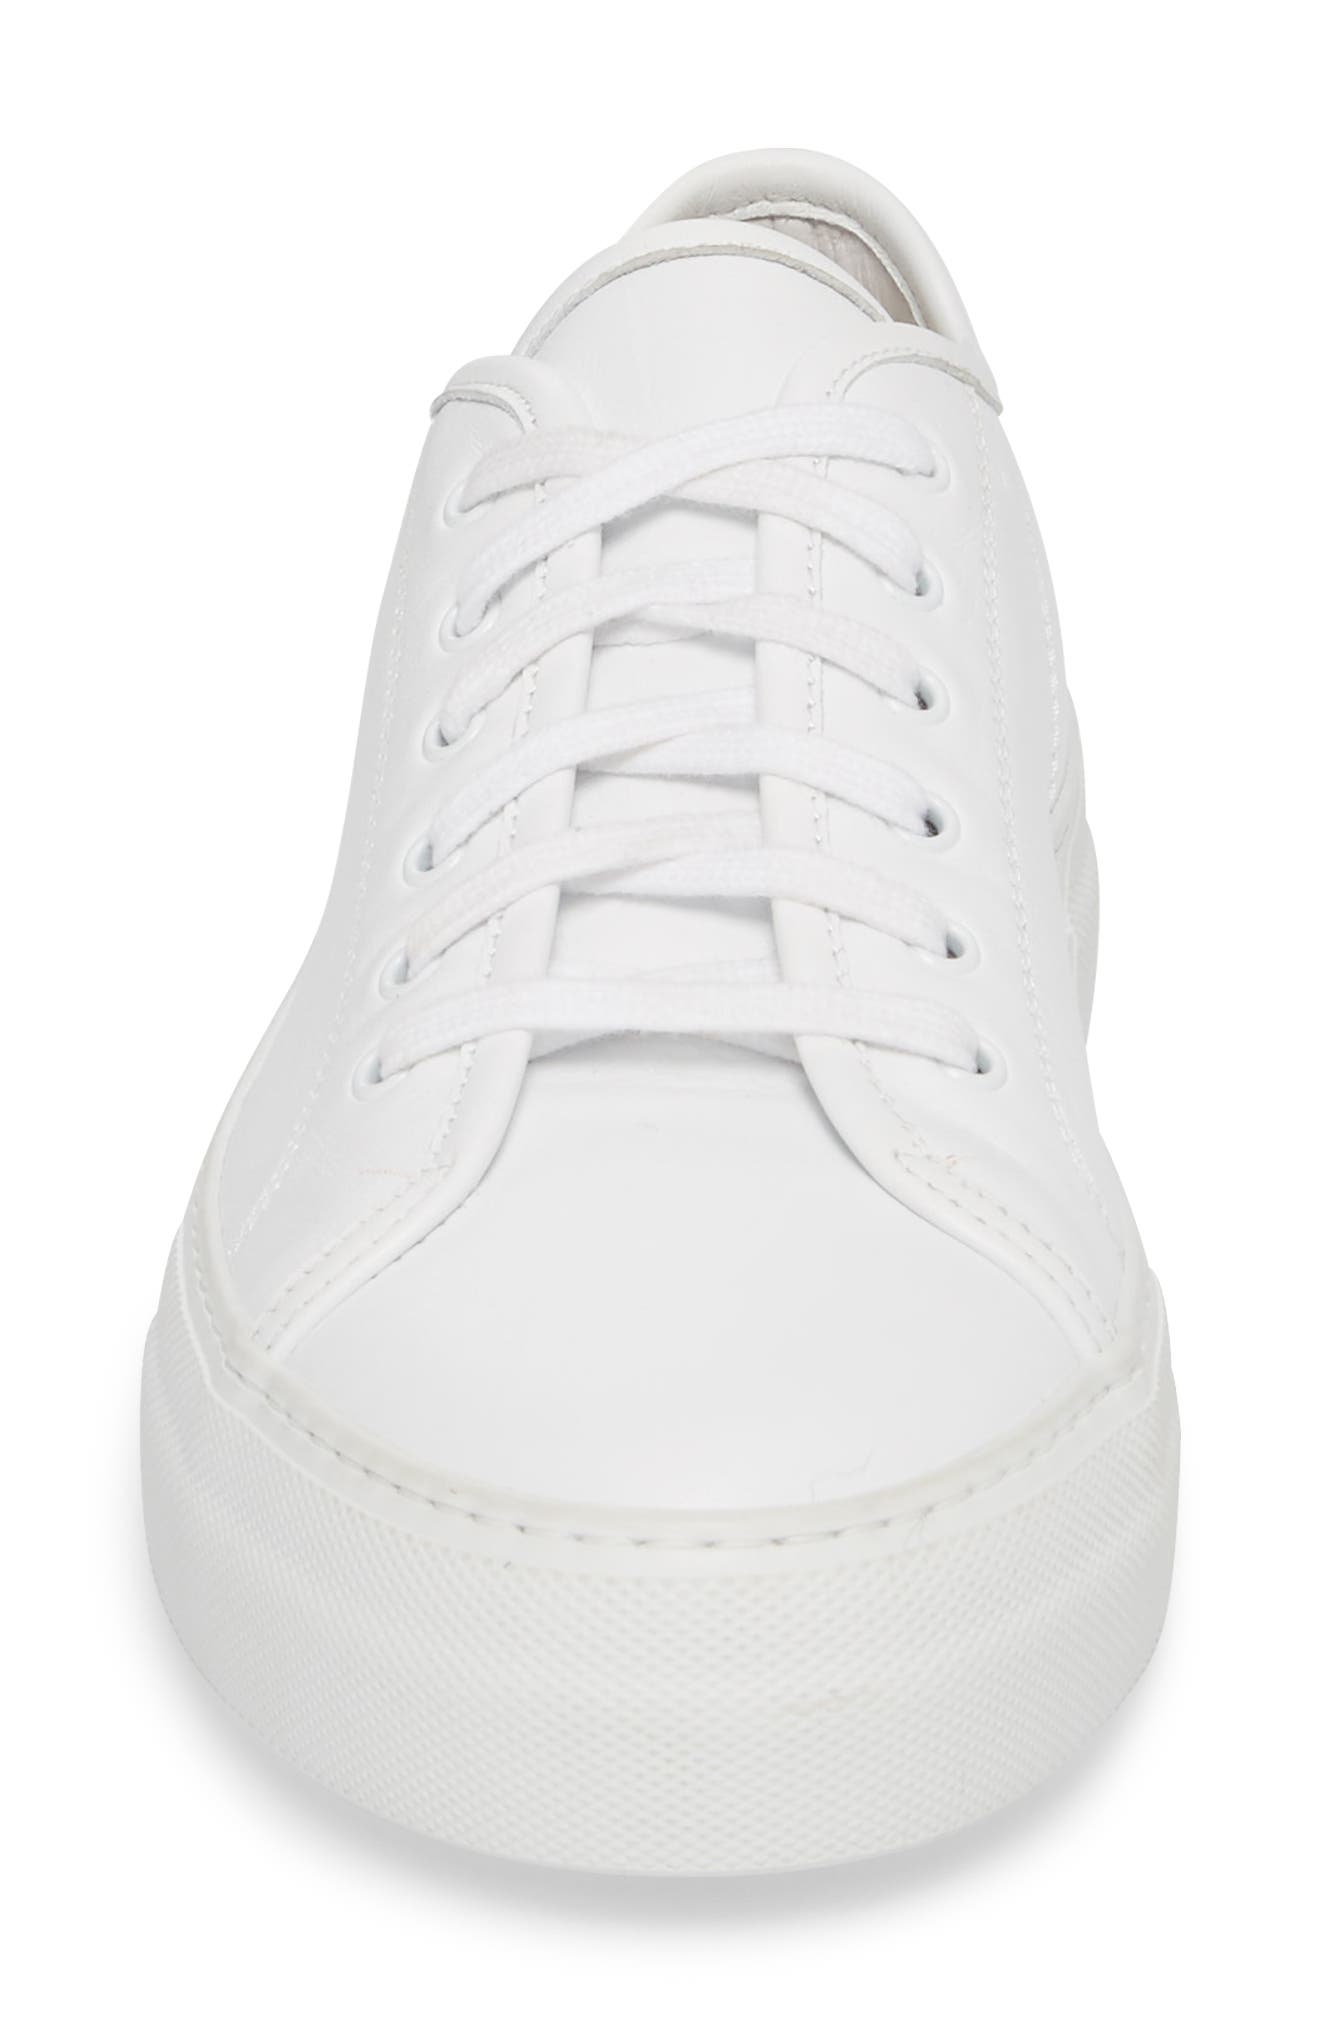 COMMON PROJECTS, Tournament Low Top Sneaker, Alternate thumbnail 4, color, WHITE